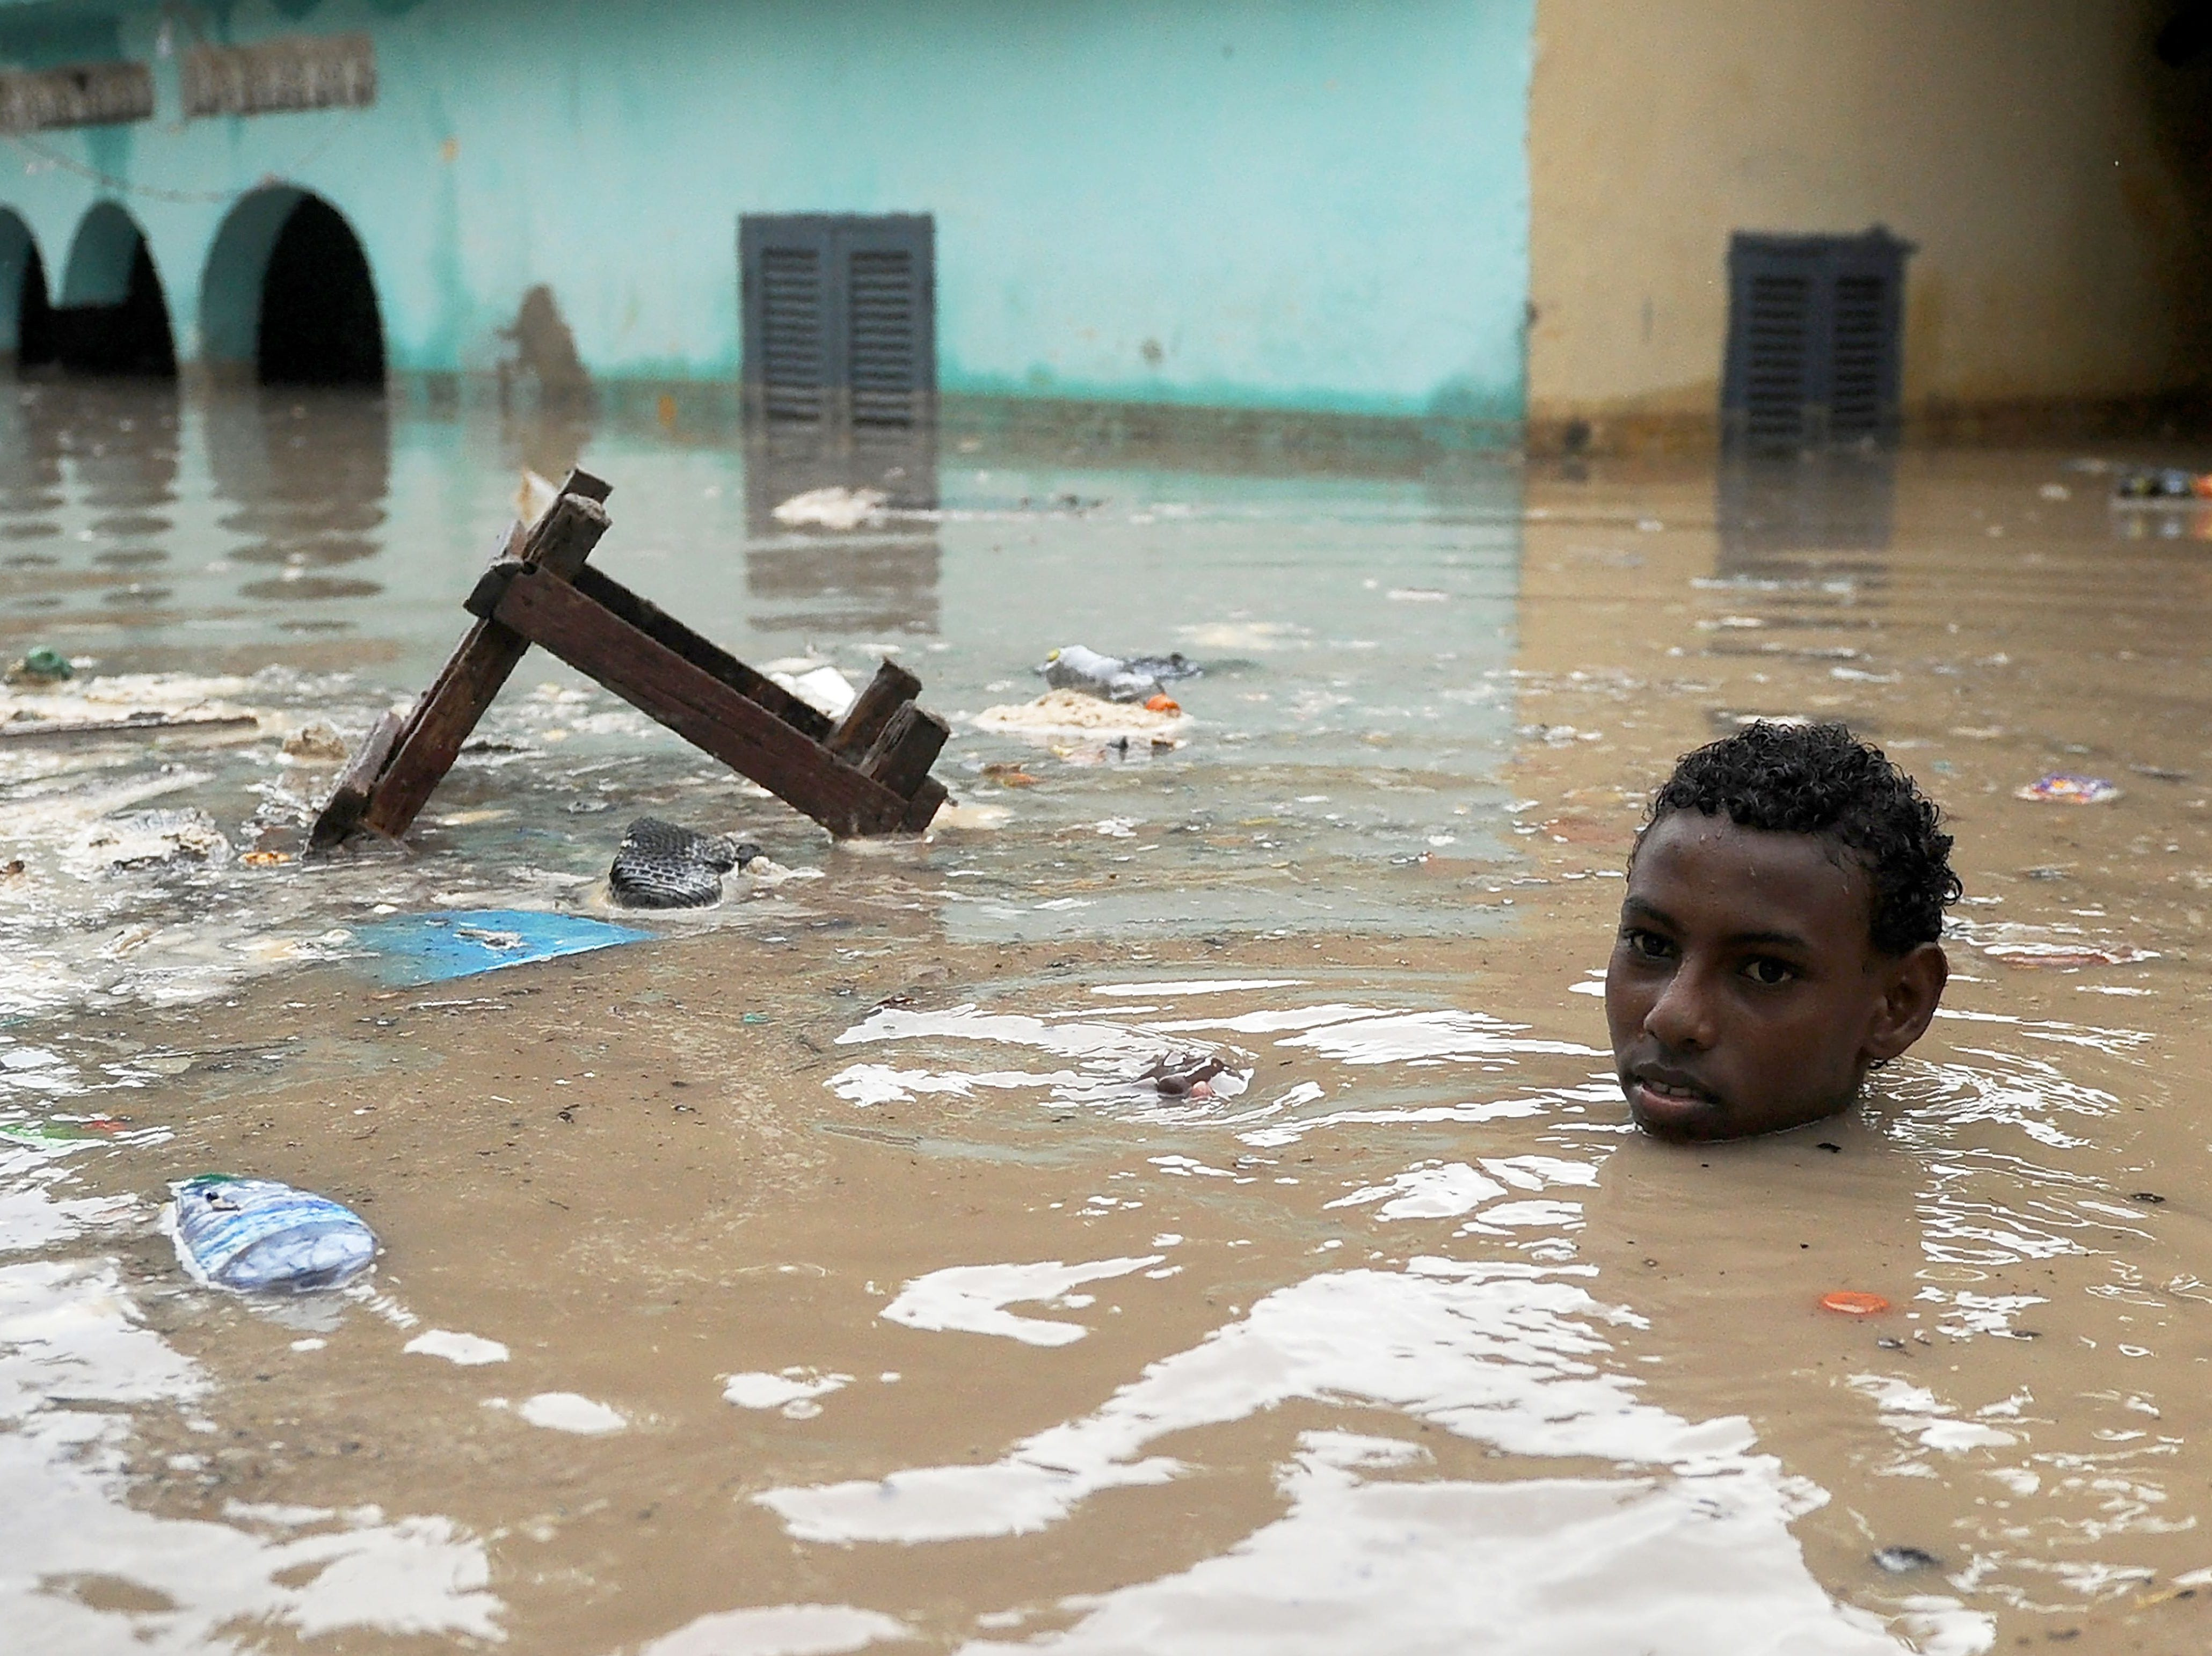 May 20, 2018: A young man wades through neck-deep flood water in Mogadishu after homes were inundated in Somalia's capital following heavy overnight rainfall.